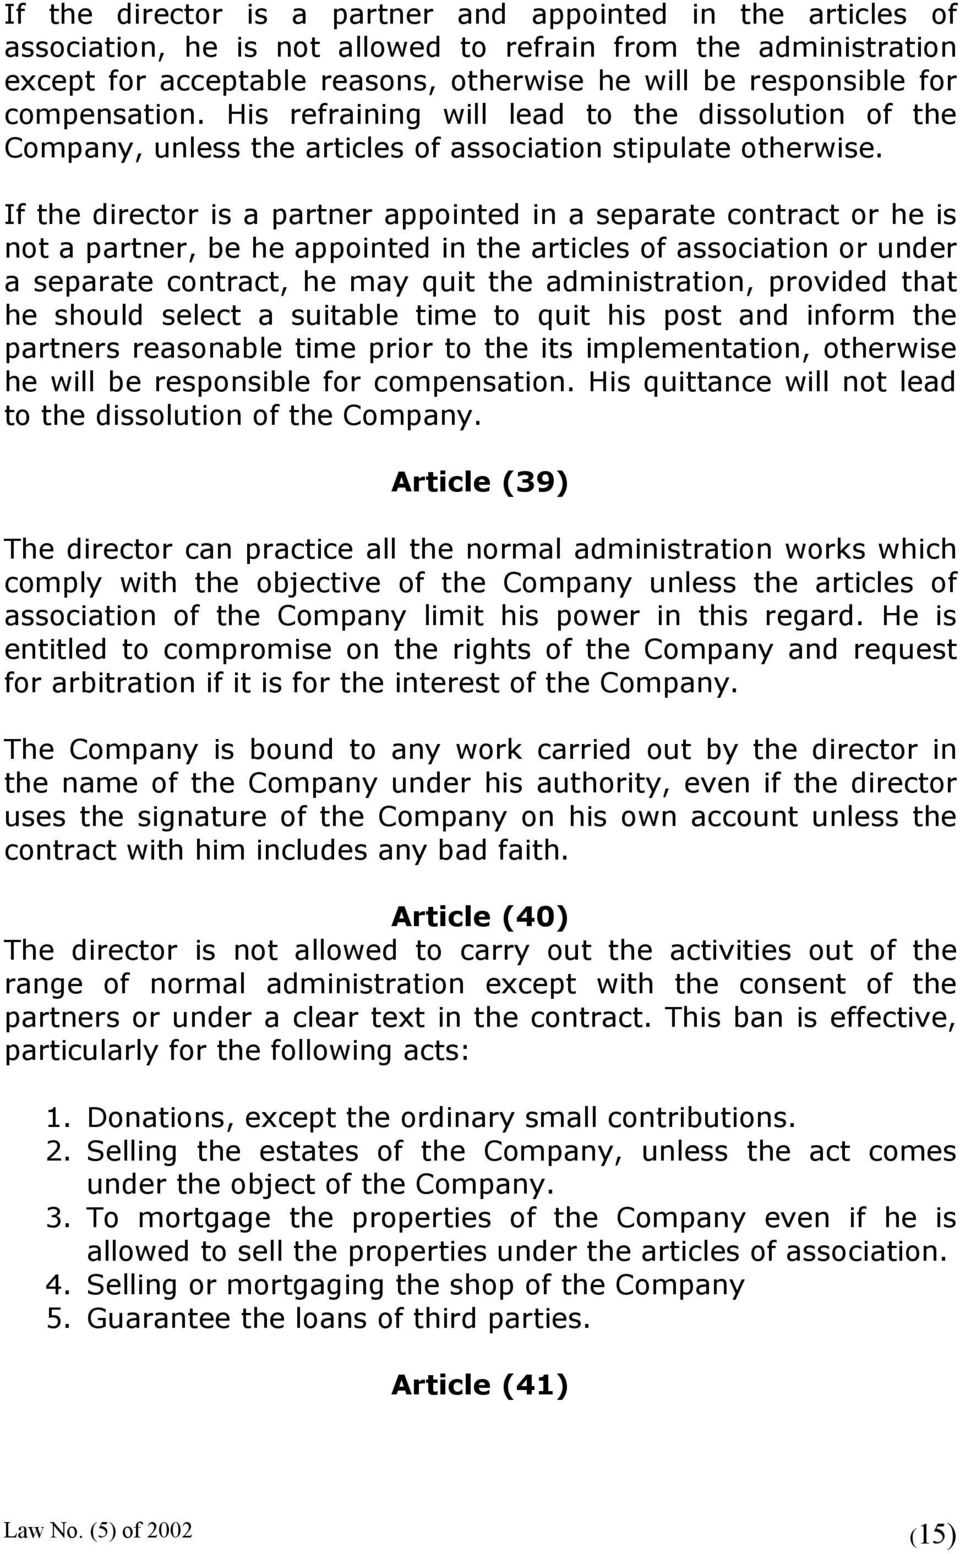 If the director is a partner appointed in a separate contract or he is not a partner, be he appointed in the articles of association or under a separate contract, he may quit the administration,